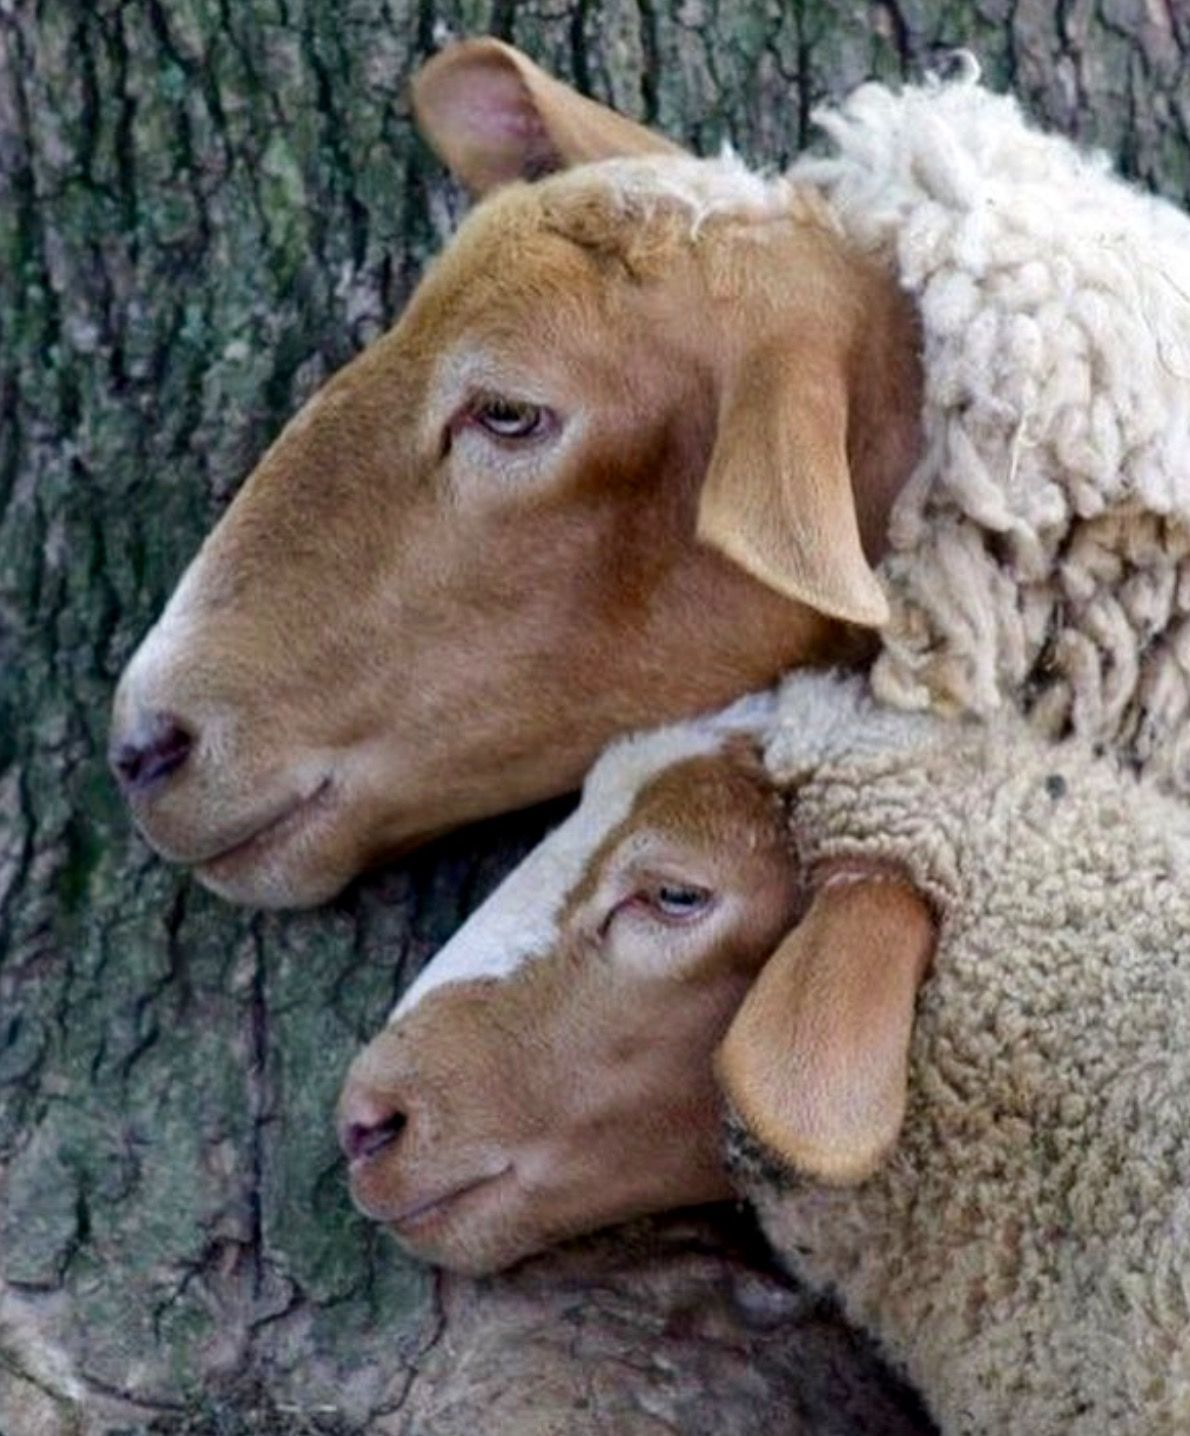 Pretty Red Sheep Are These California Reds Or Tunis Sheep And Lamb Animals Beautiful Red Sheep